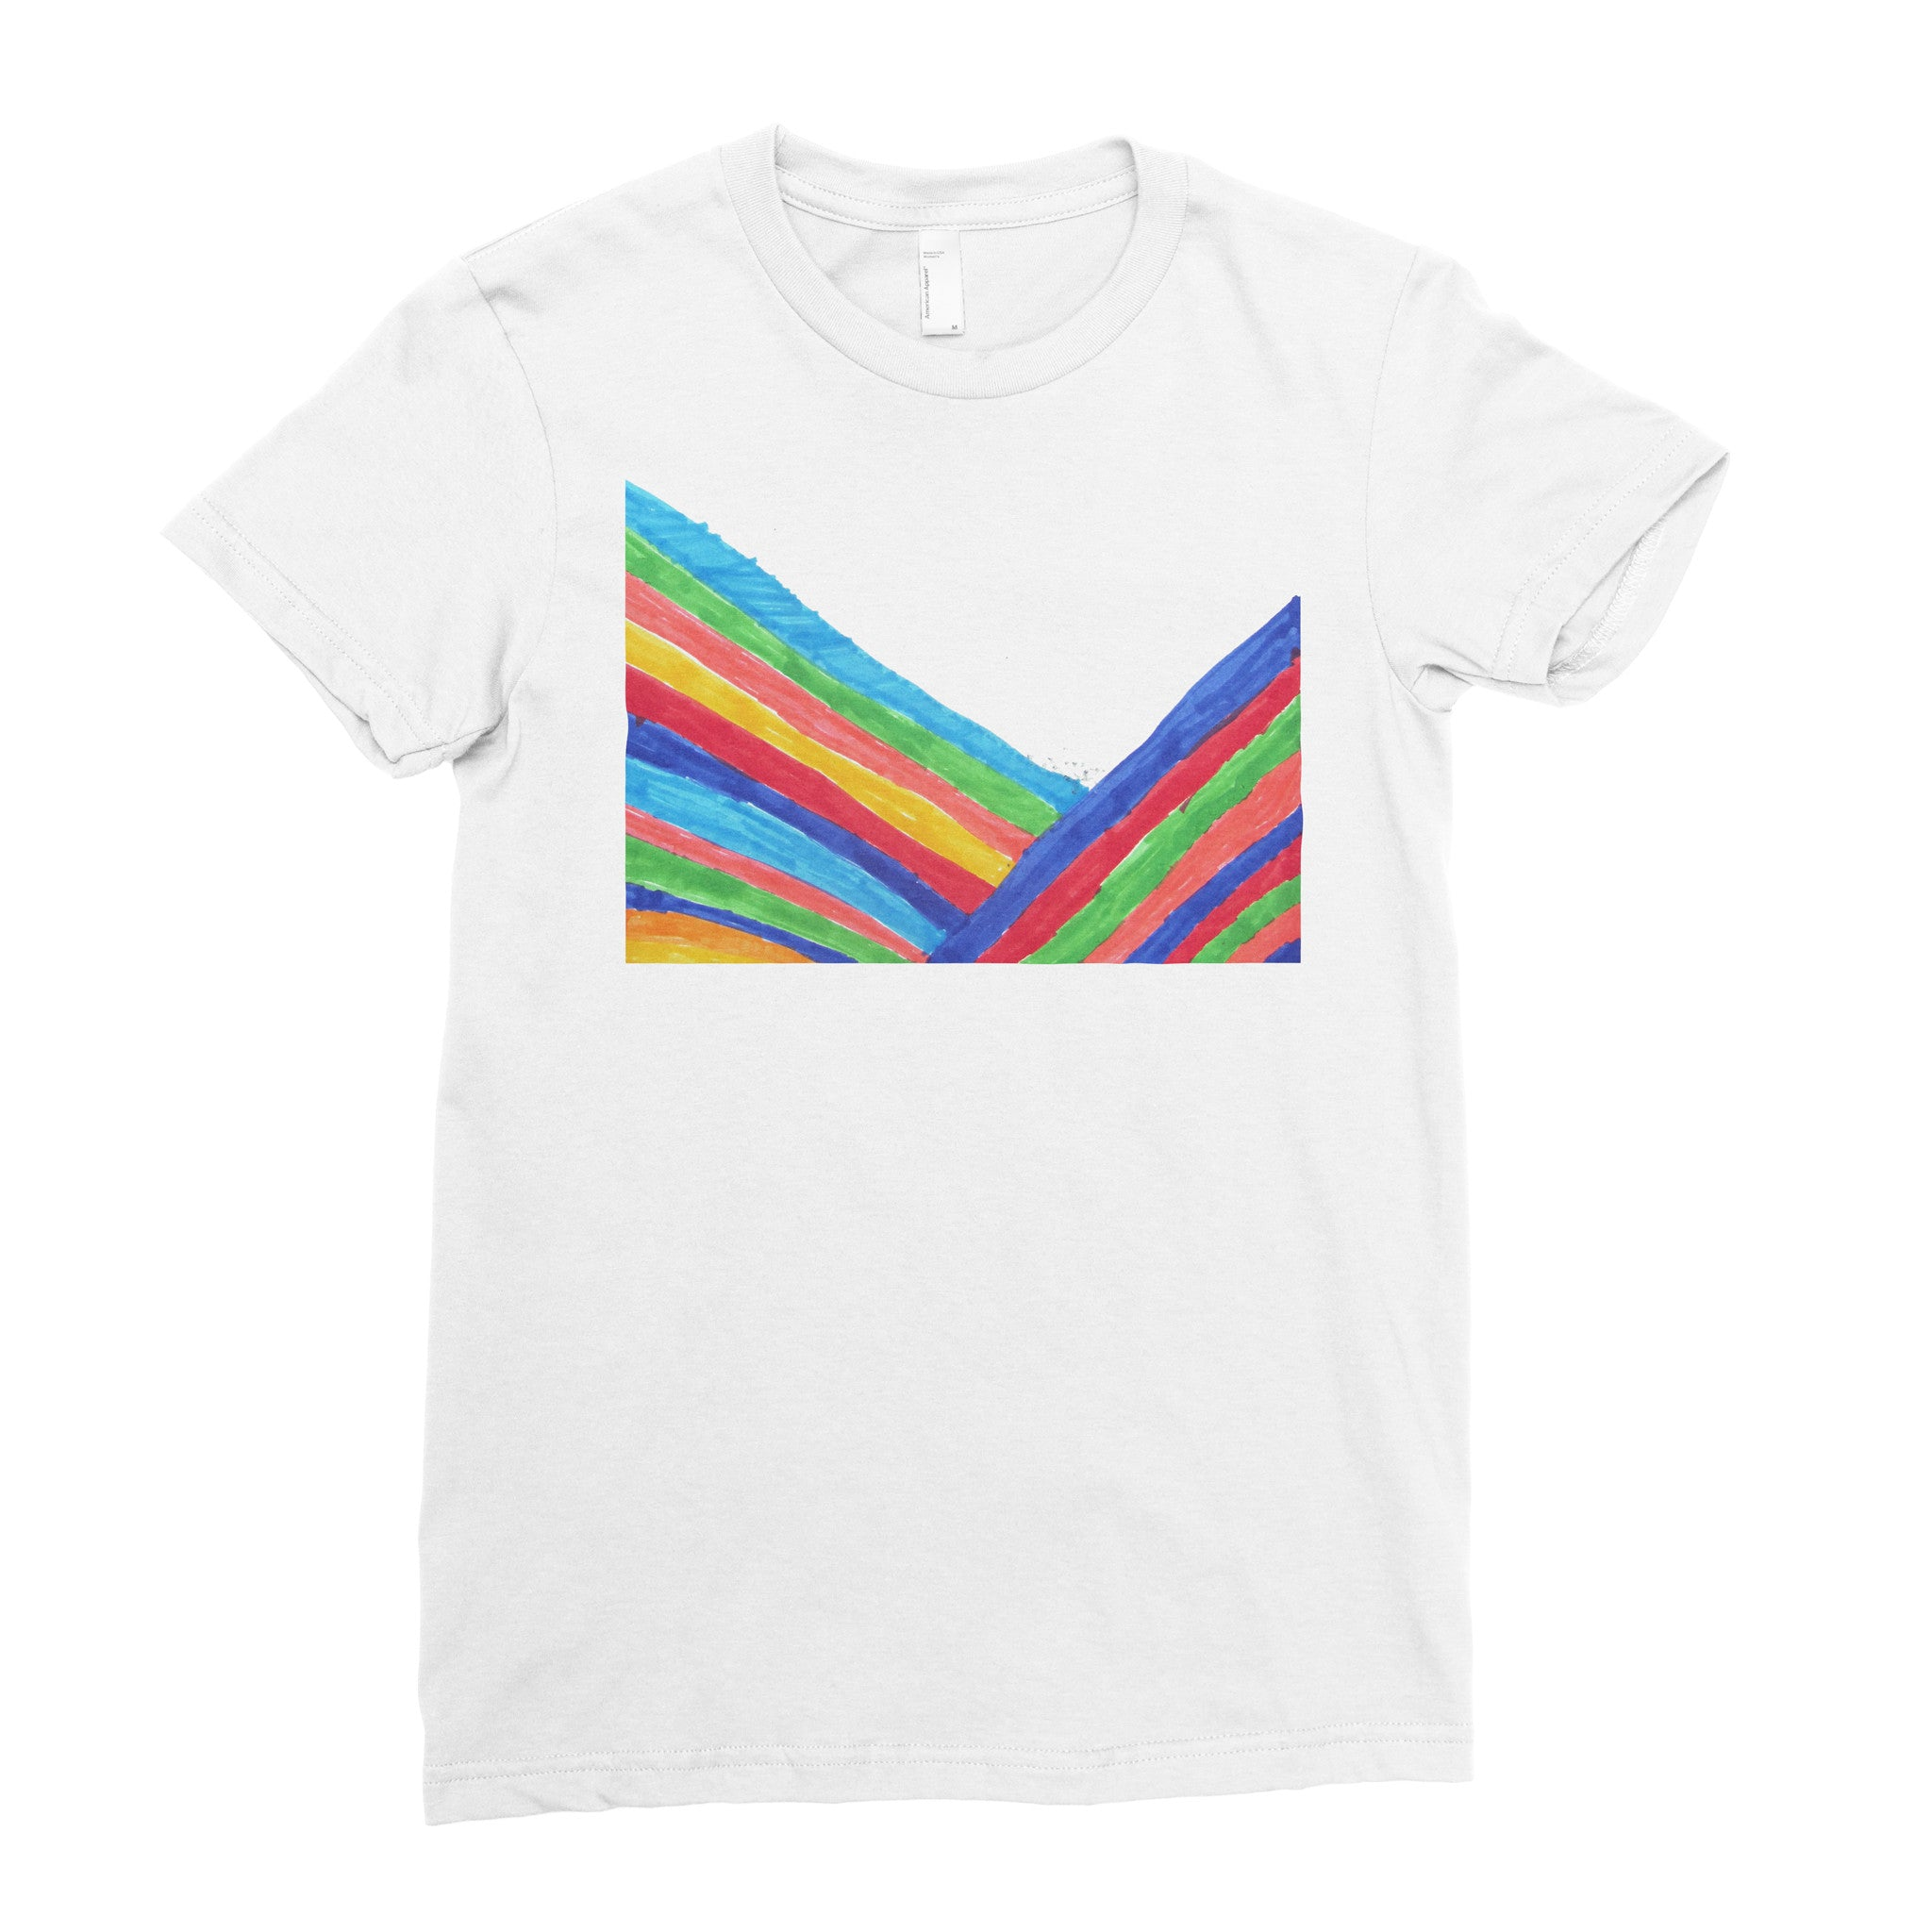 Rainbow - Adult T-shirt - Rightside Shirts